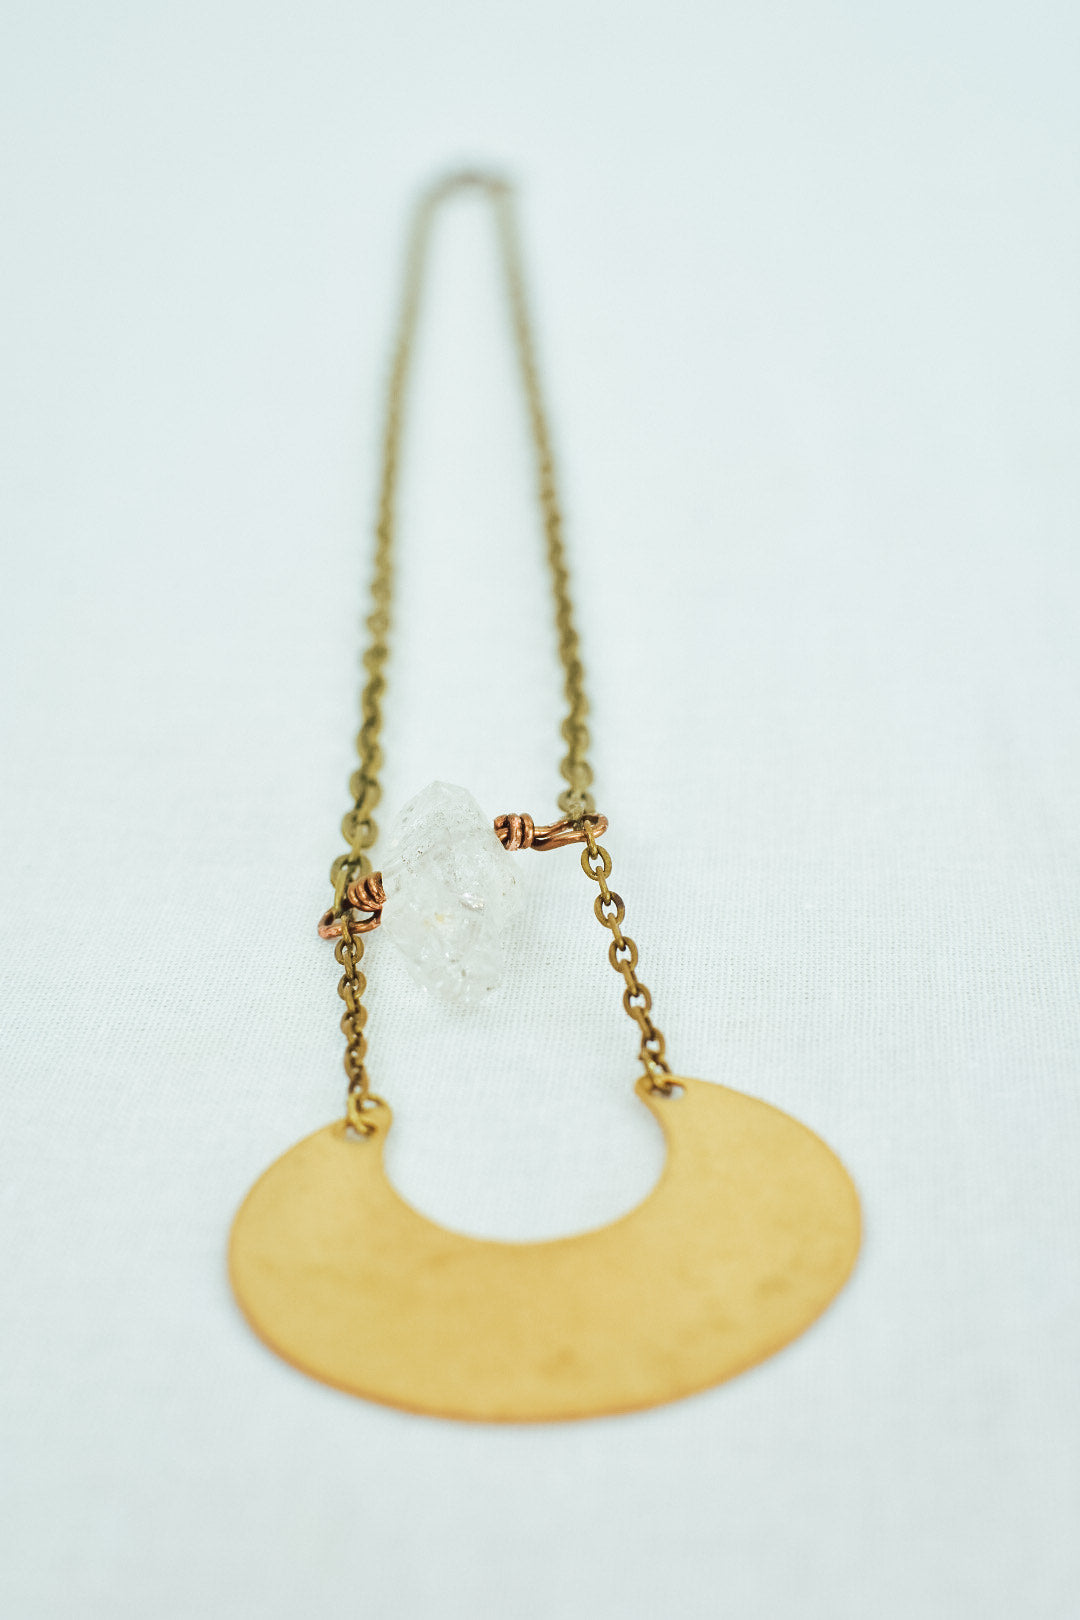 Tides Necklace